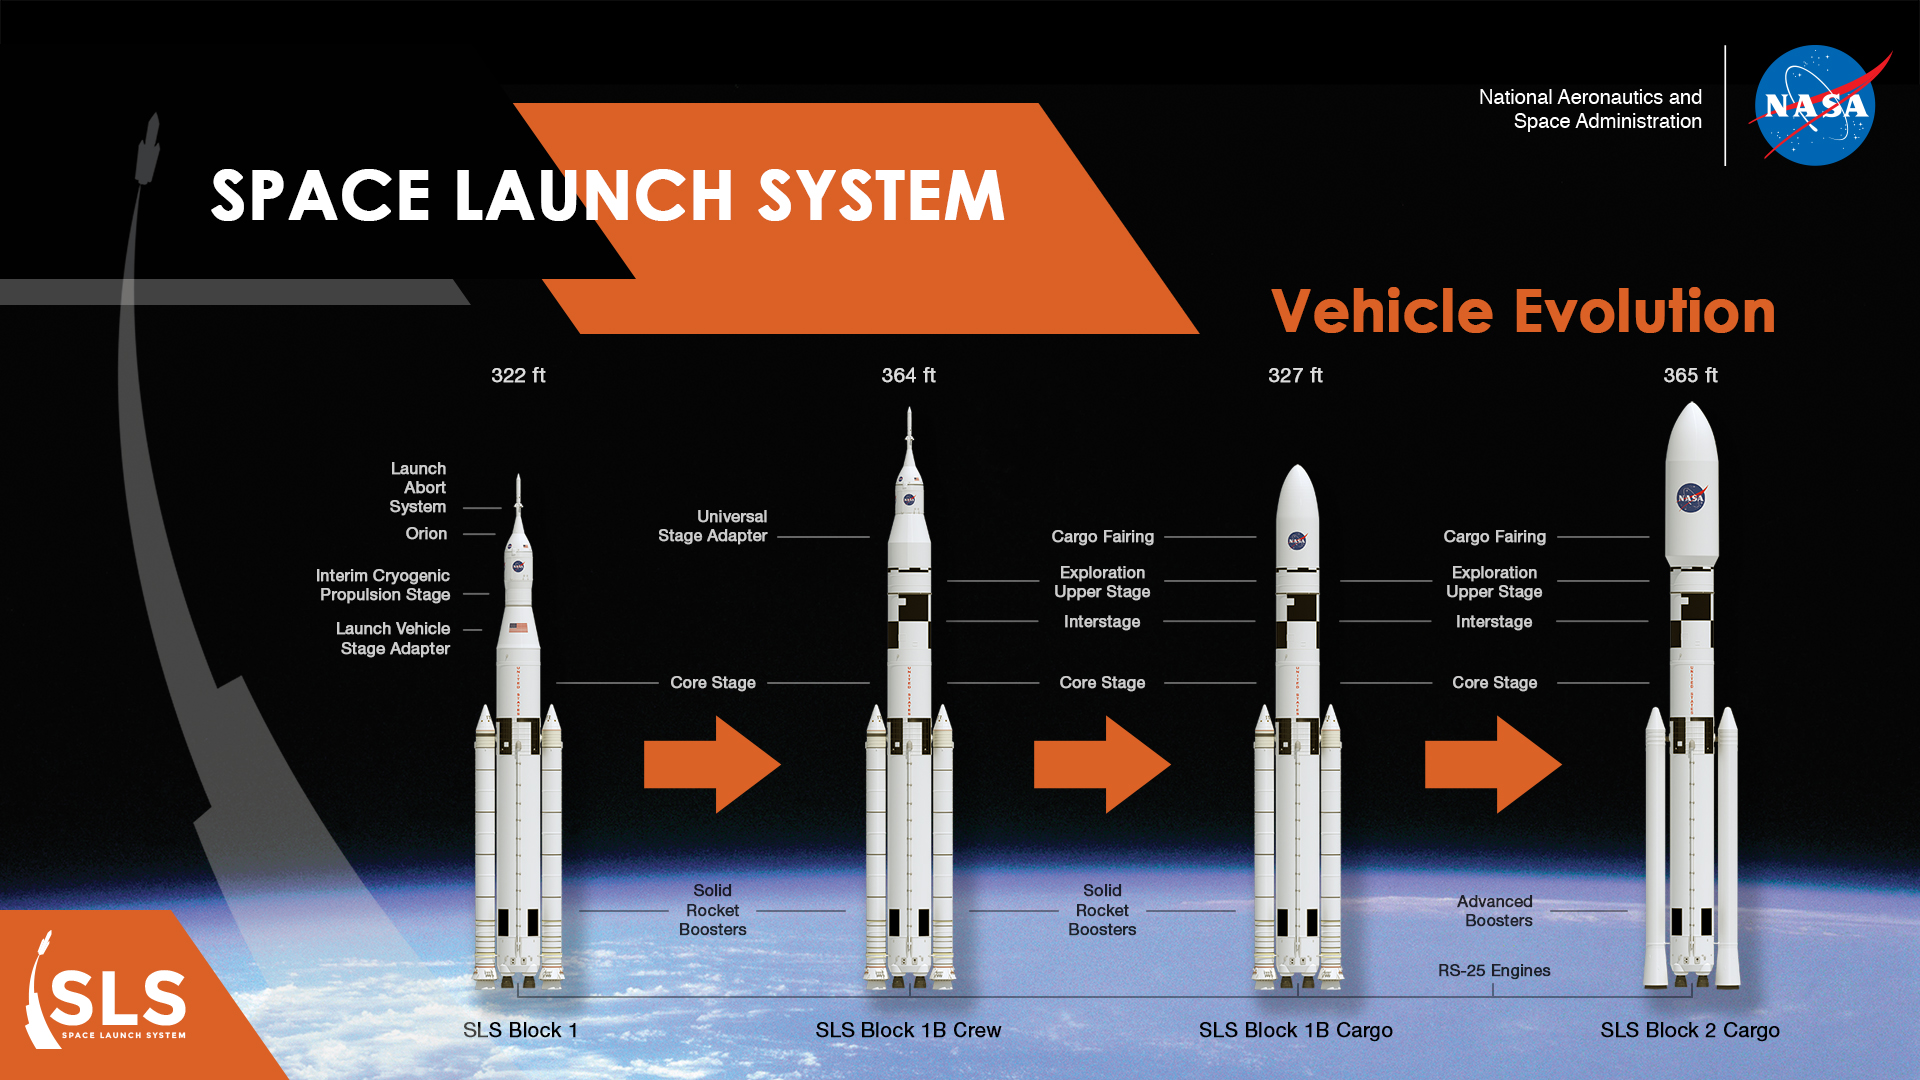 Space Launch System Evolution Courtesy of Marshall Space Flight Center in Huntsville, Alabama